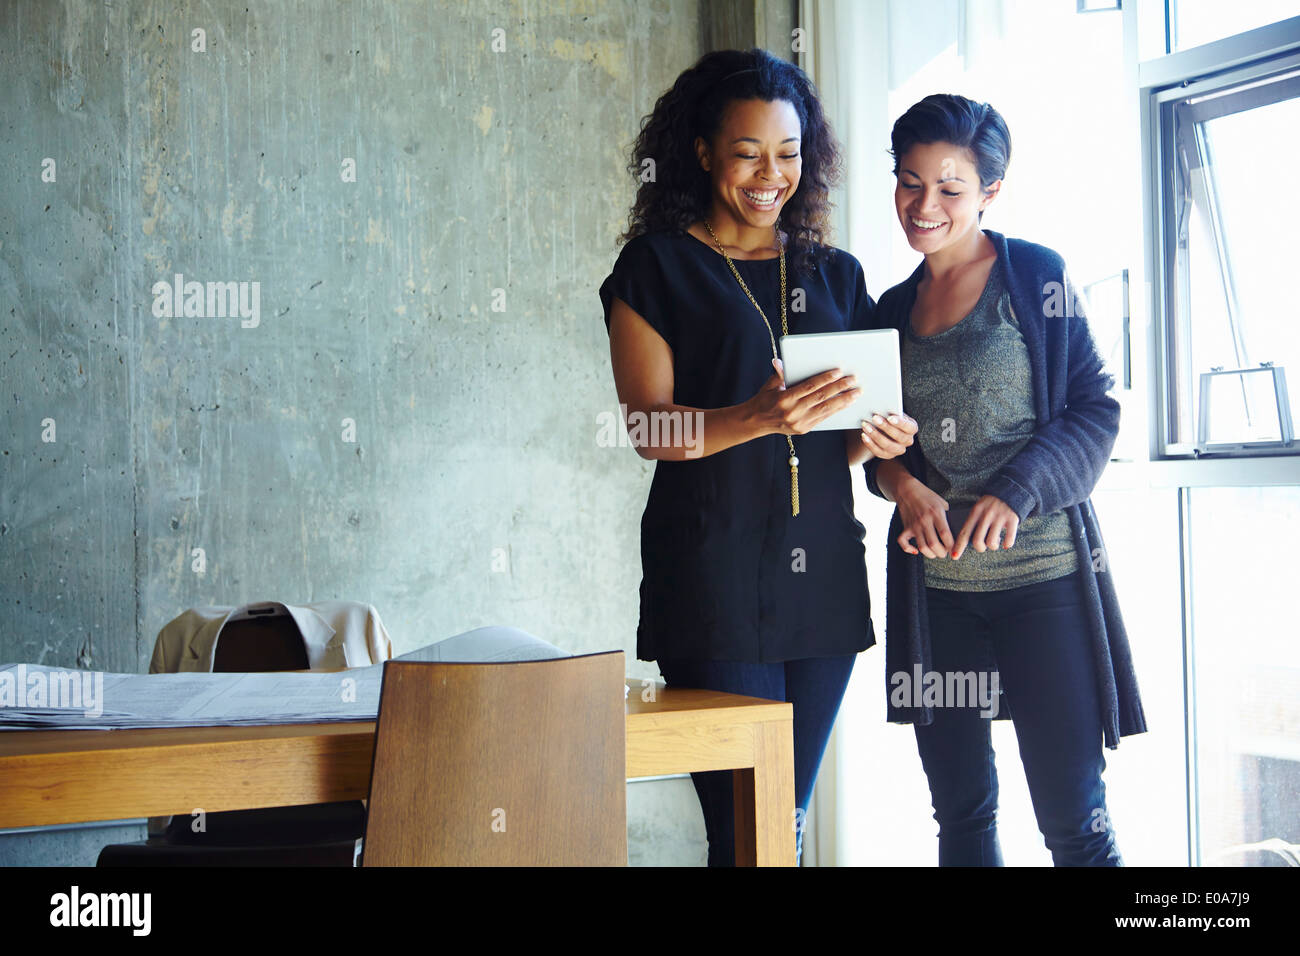 Two young businesswomen looking at digital tablet - Stock Image